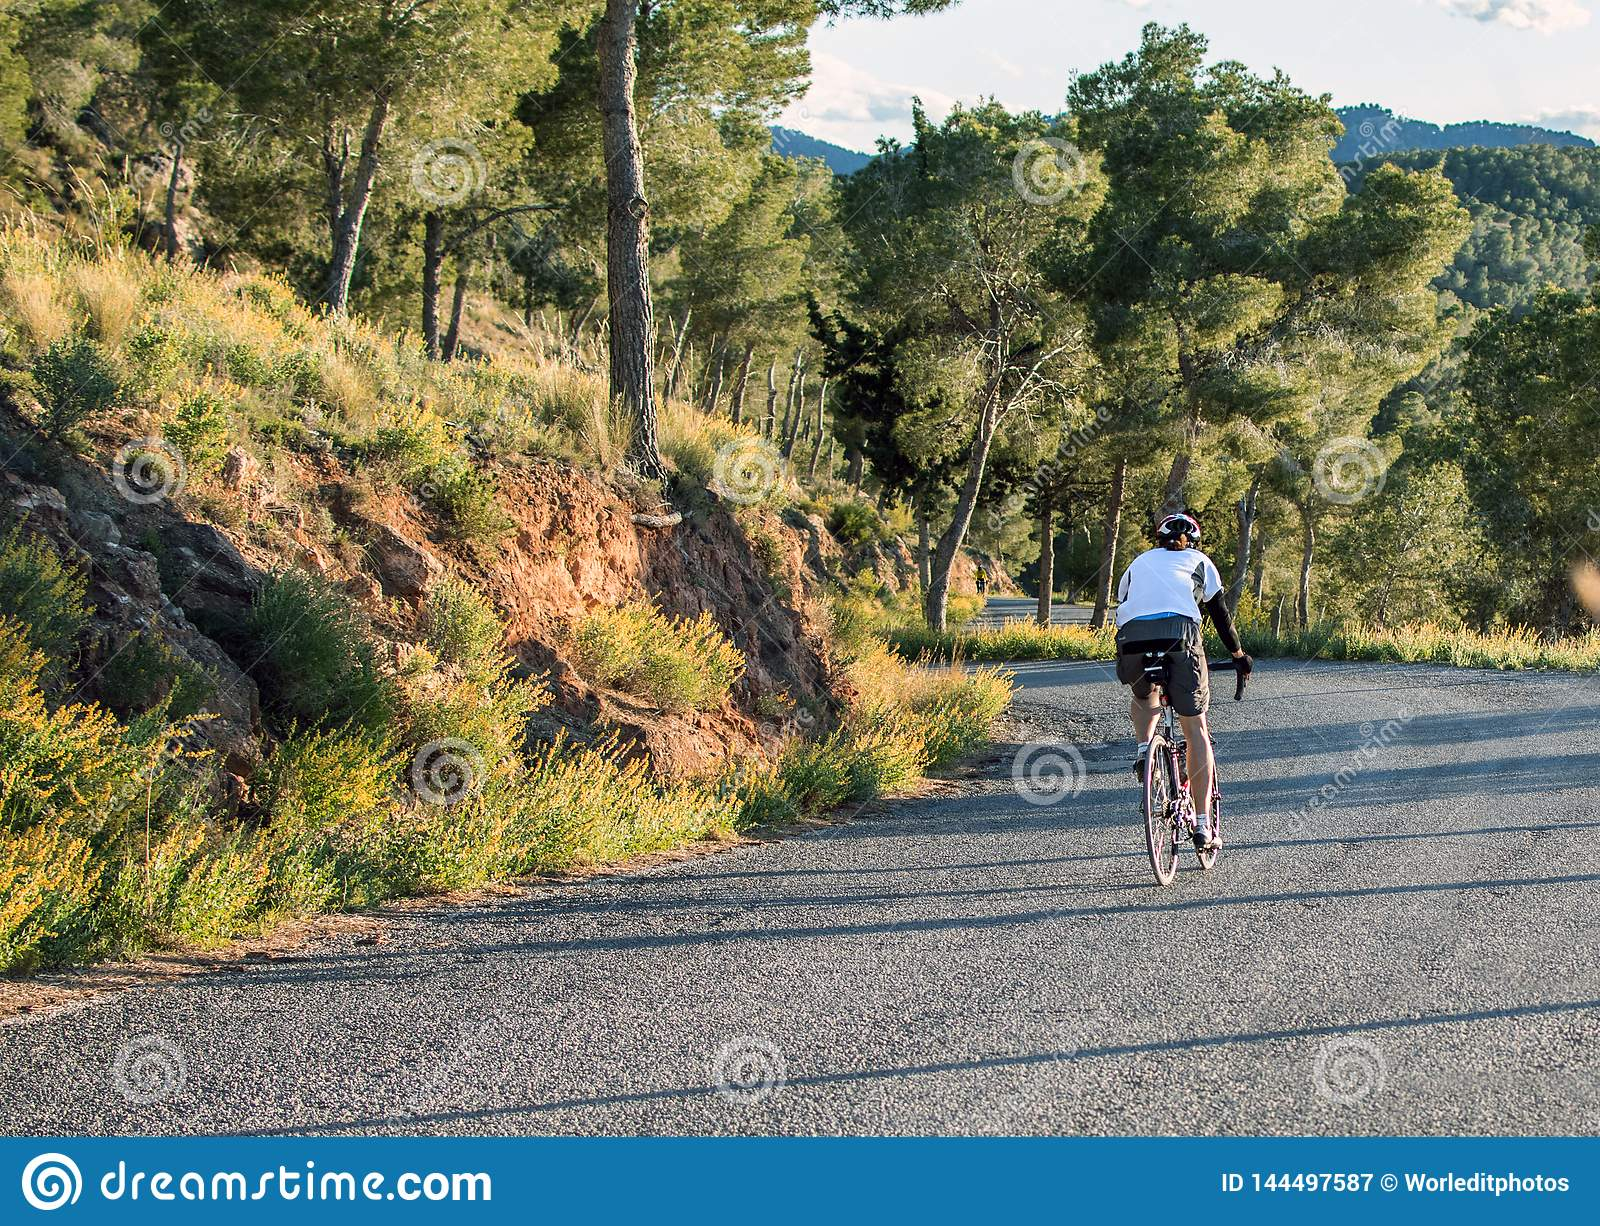 Murcia, Spain - April 9, 2019: Pro road cyclists enduring a difficult mountain ascent on his cool bicycle